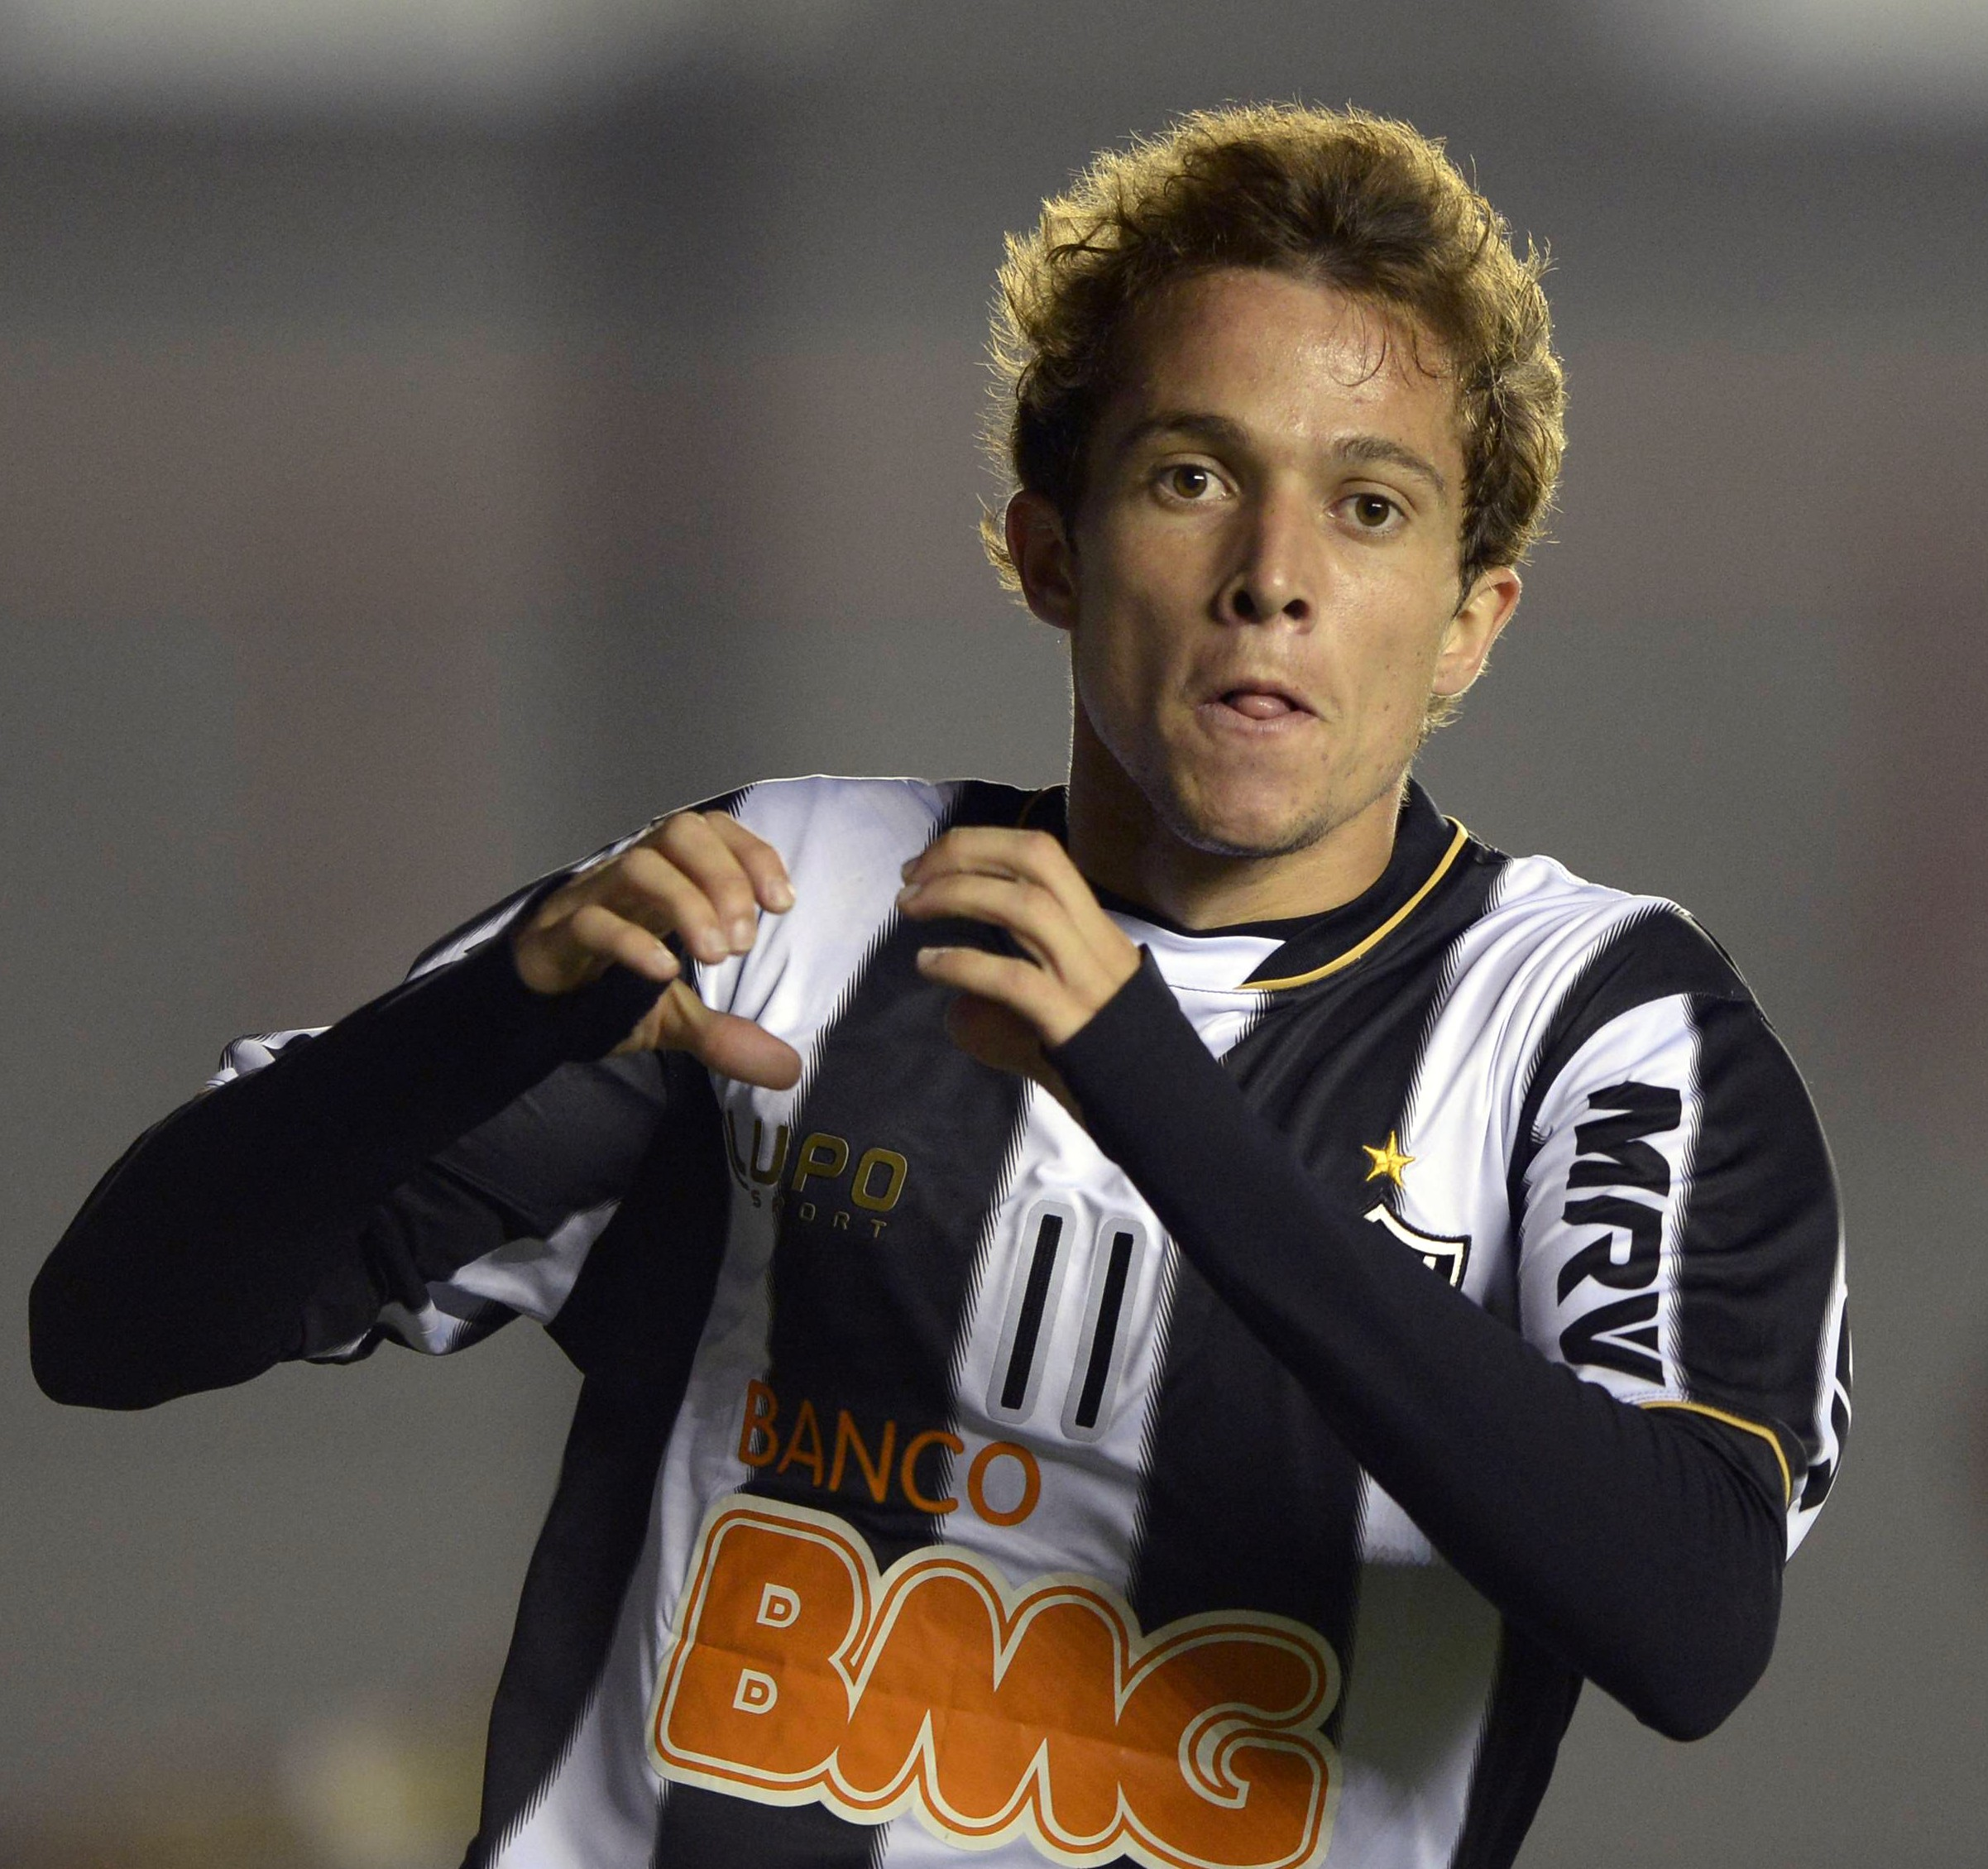 Arsenal alerted as Atletico Mineiro put Bernard up for sale for £25million